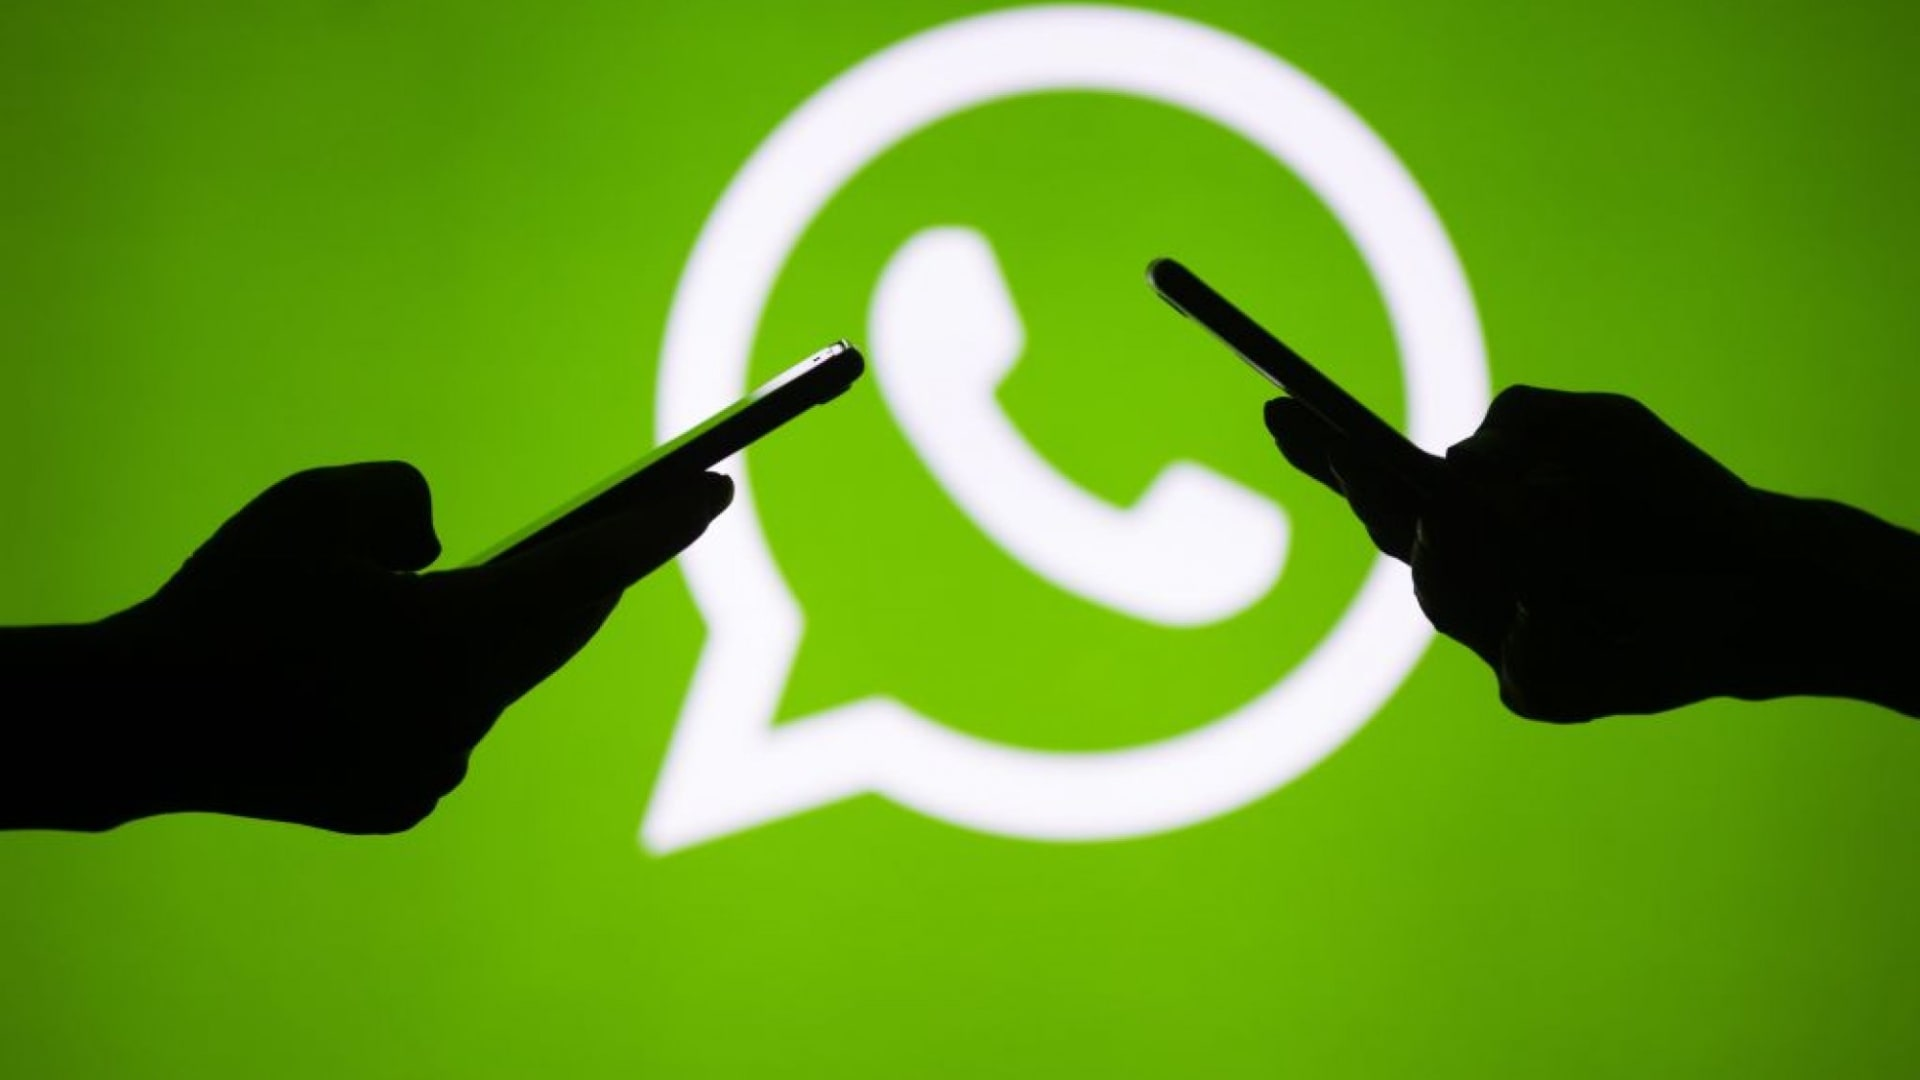 WhatsApp's New Privacy Policy Is Here. Why Facebook Is Playing Hardball With Your Data